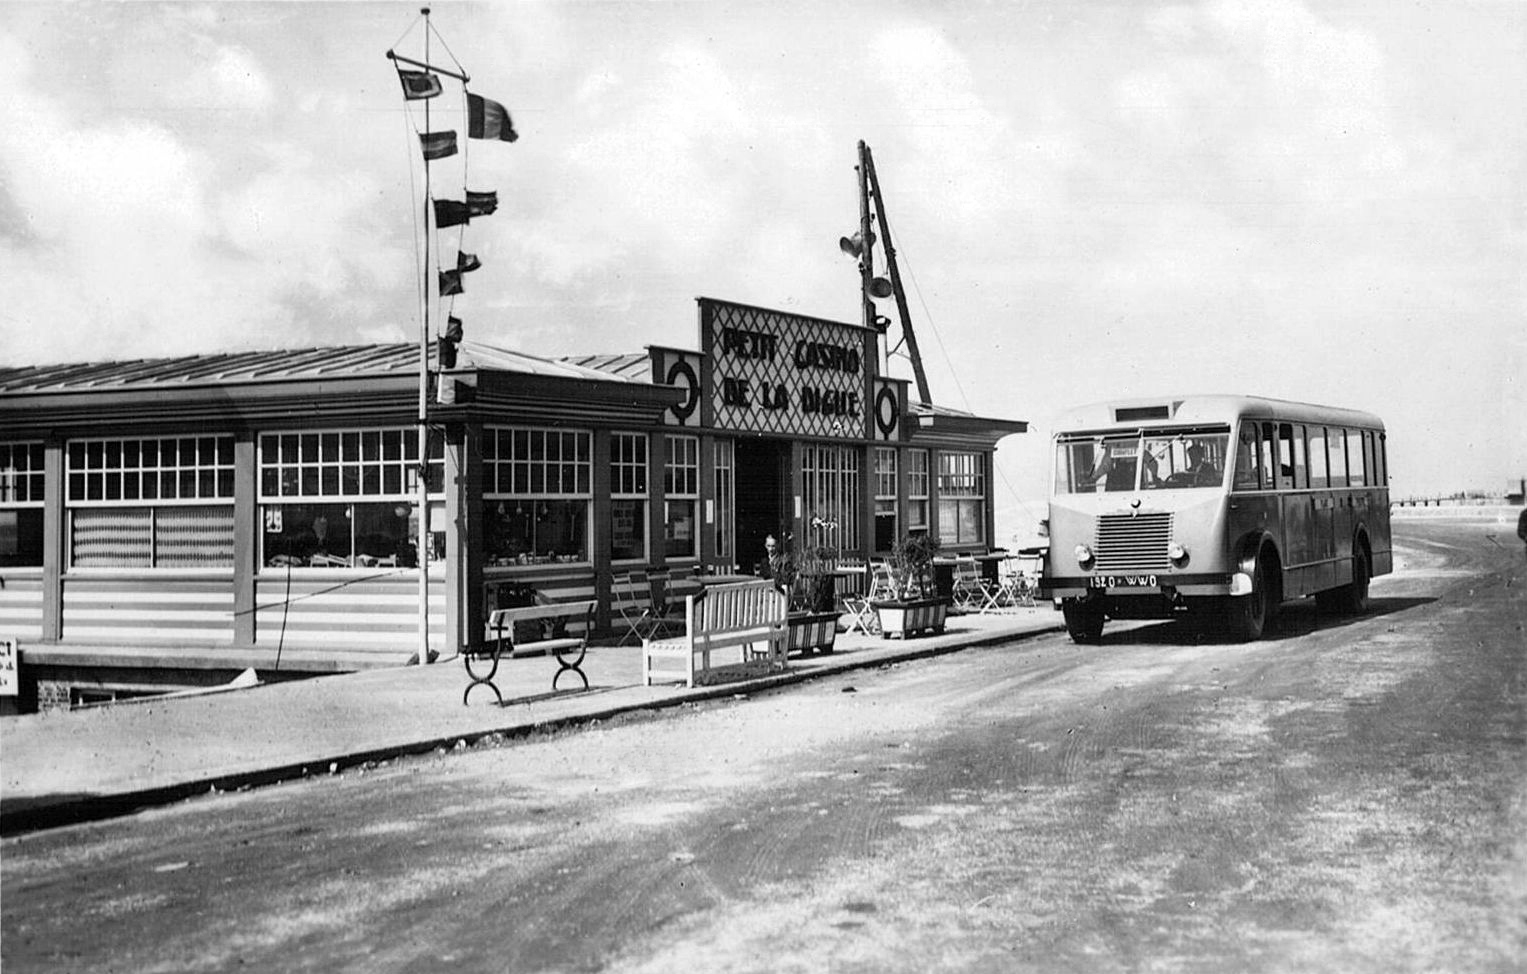 Bus Paris Calais Transpress Nz Renault Bus At Calais France 1950s